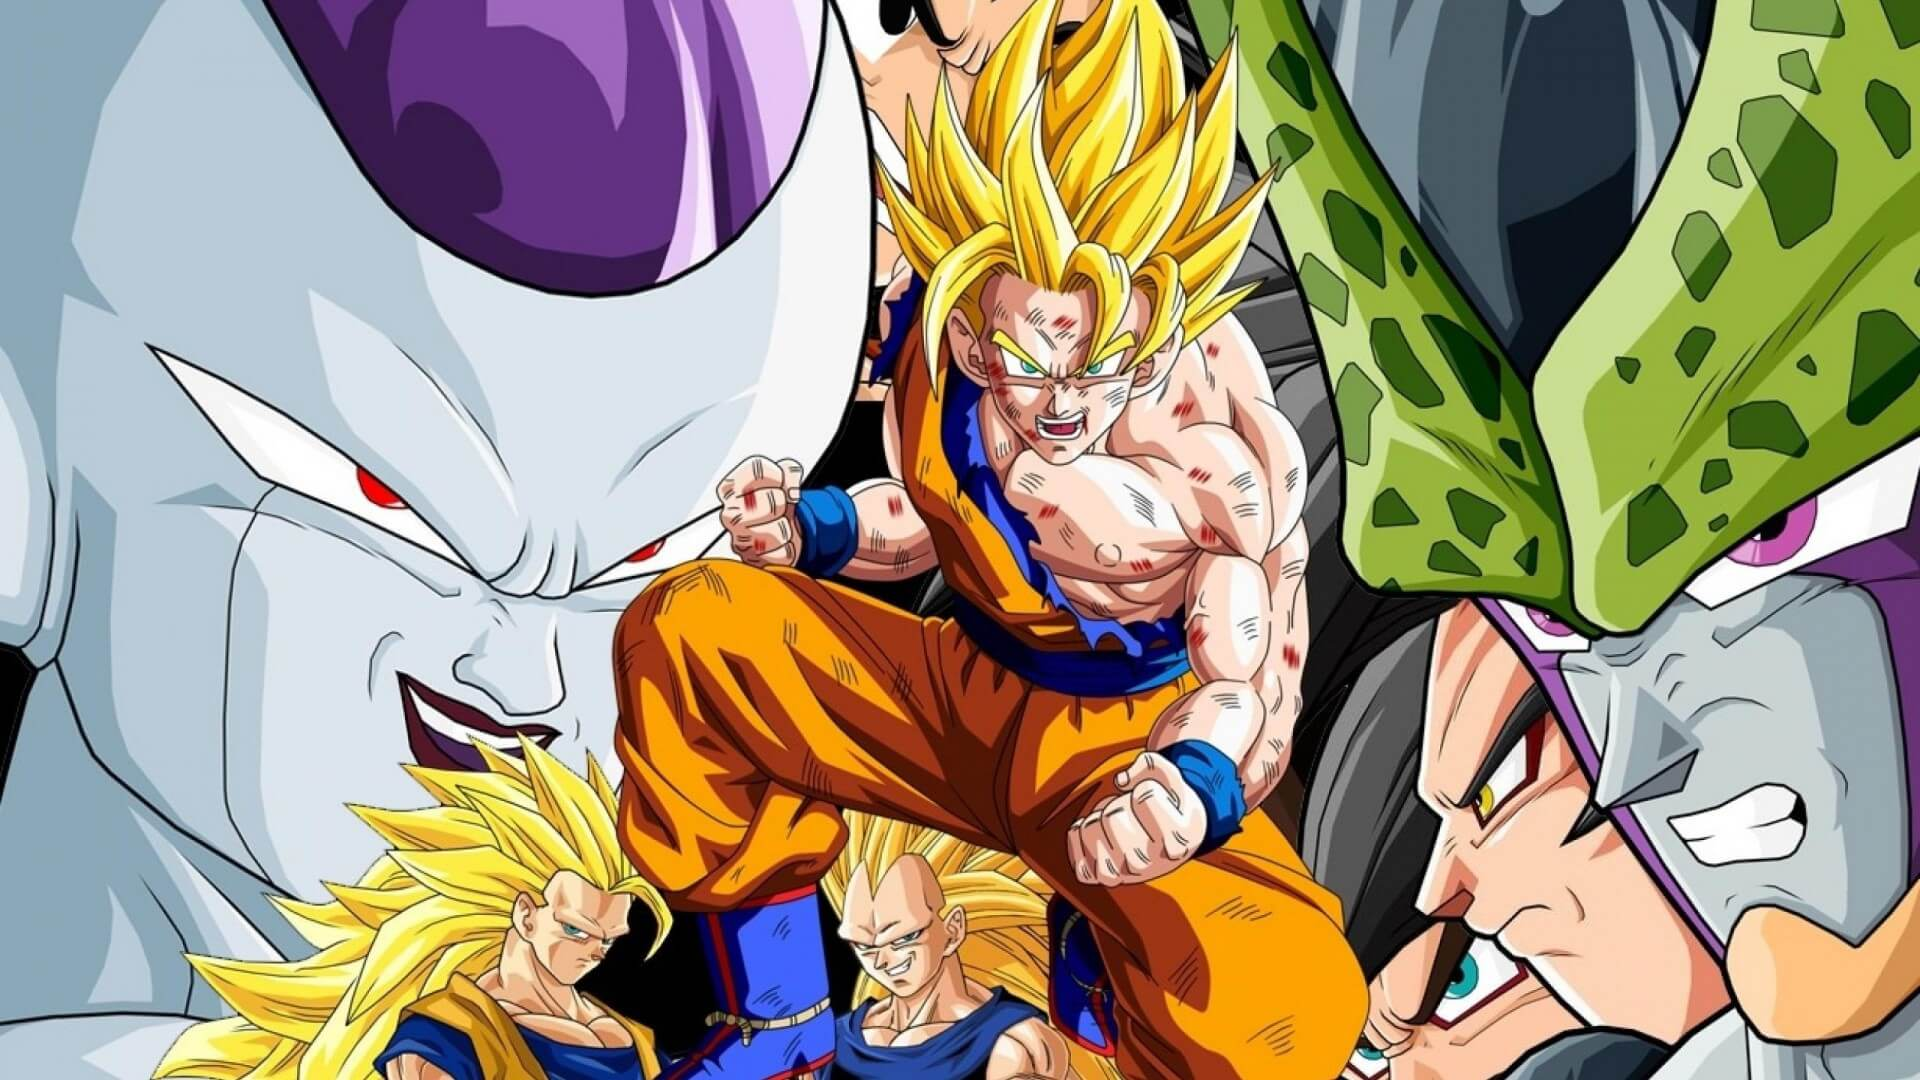 Kiss Wallpapers With Quotes Download Dragon Ball Z Goku Super Saiyan 1000 Wallpaper